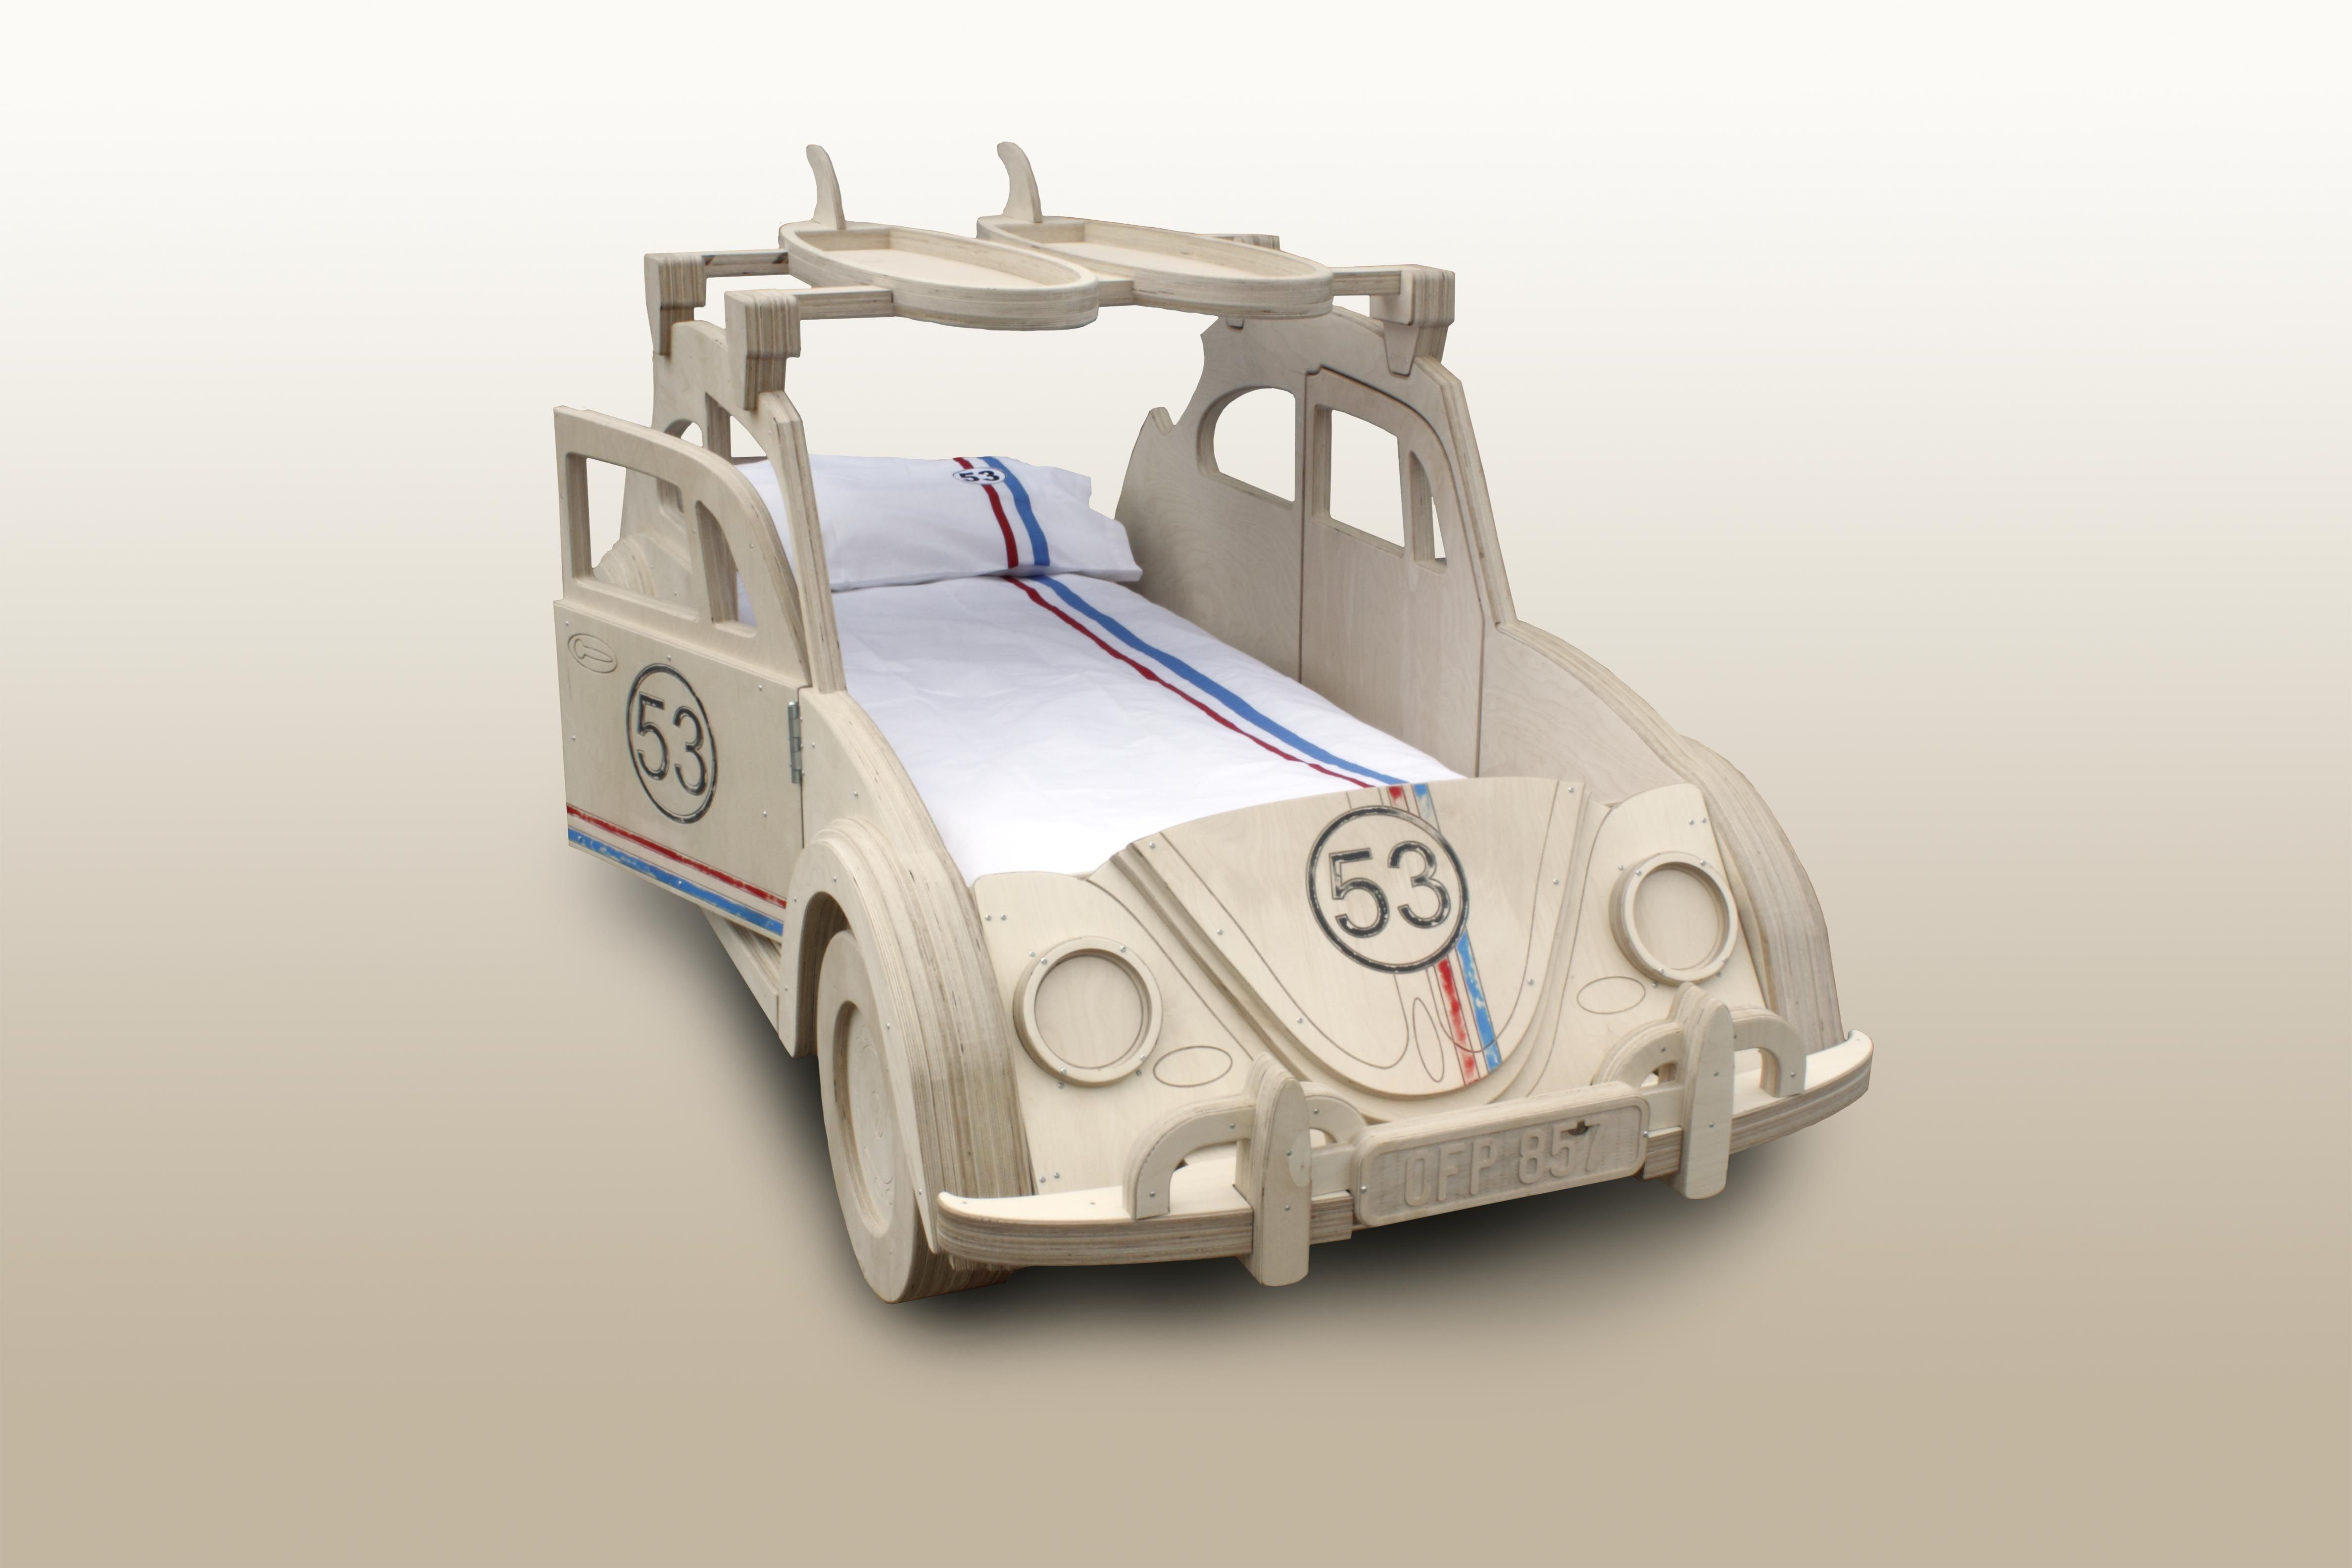 Vw Beetle Herbie Bed By Fun Furniture Collection With 53 Bedding By Classic Reflections Www Funfurniturecollection Co Kids Beds Plans Kid Beds Cool Furniture